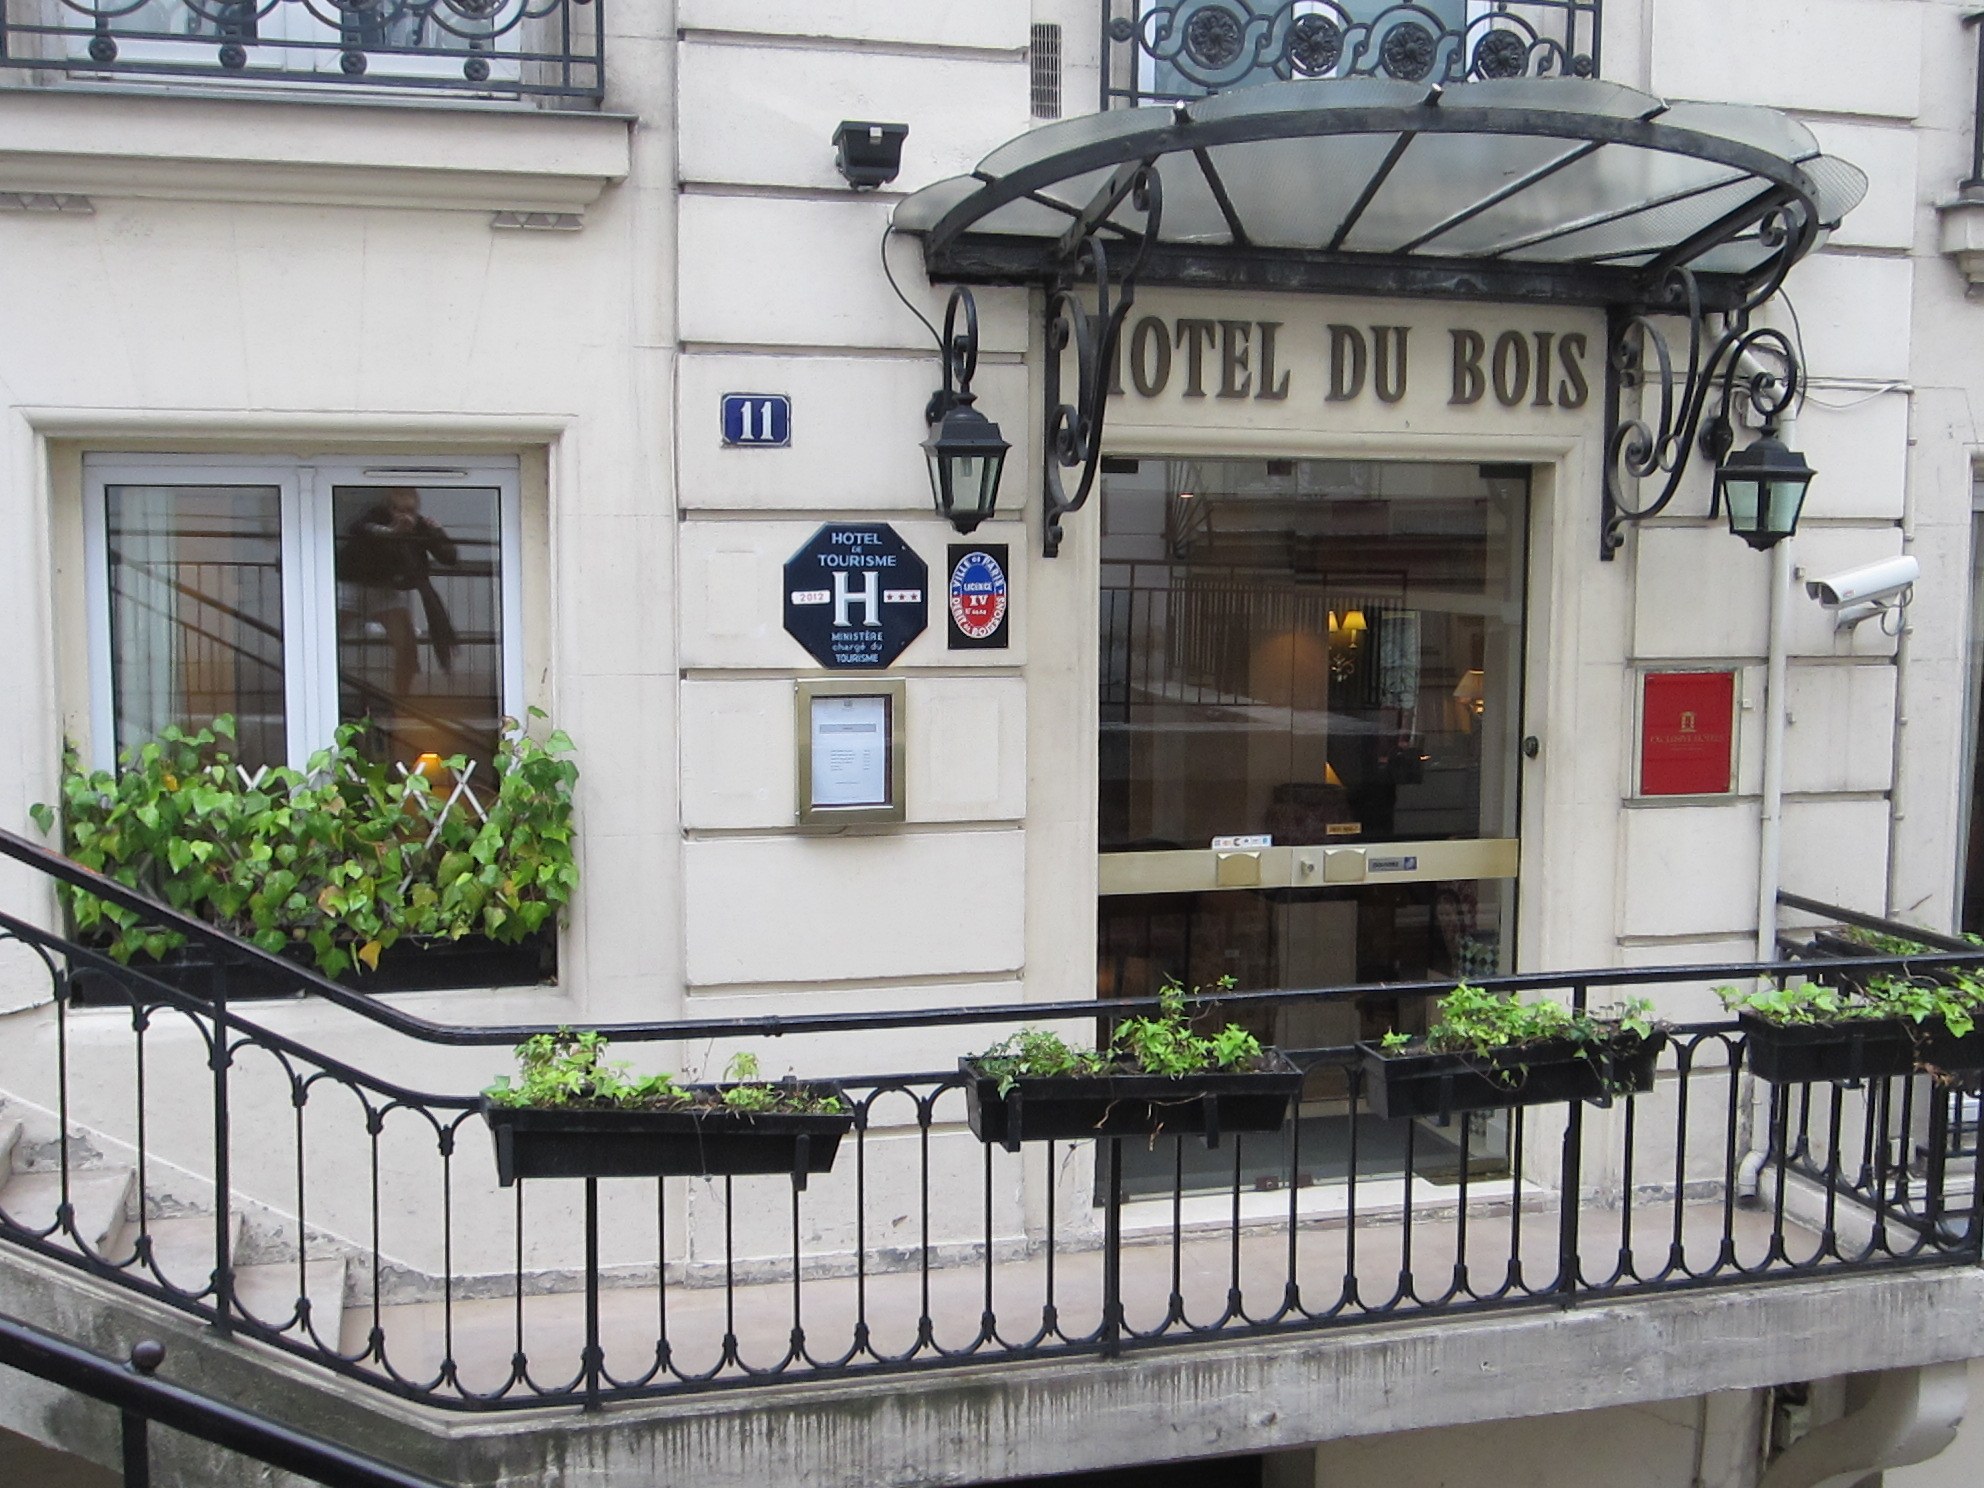 Hotel Saint Germain Du Bois